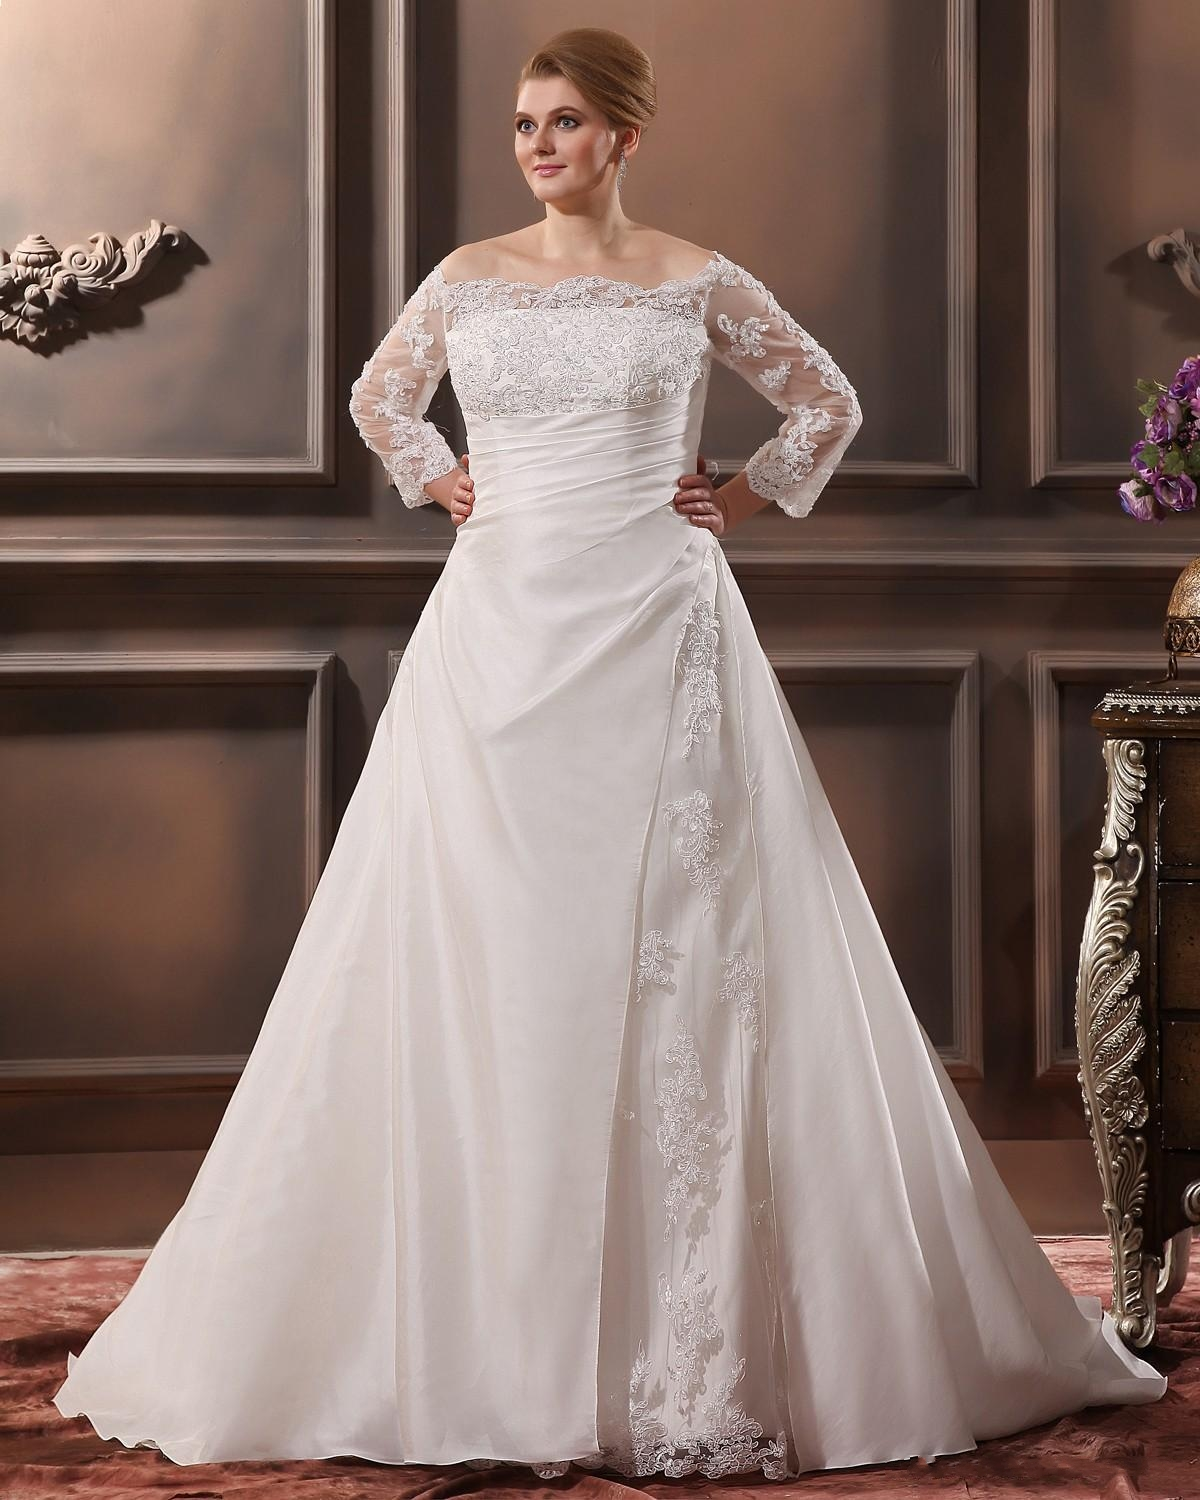 Plus Size Wedding Gowns: Plus Size Outfits For A Wedding